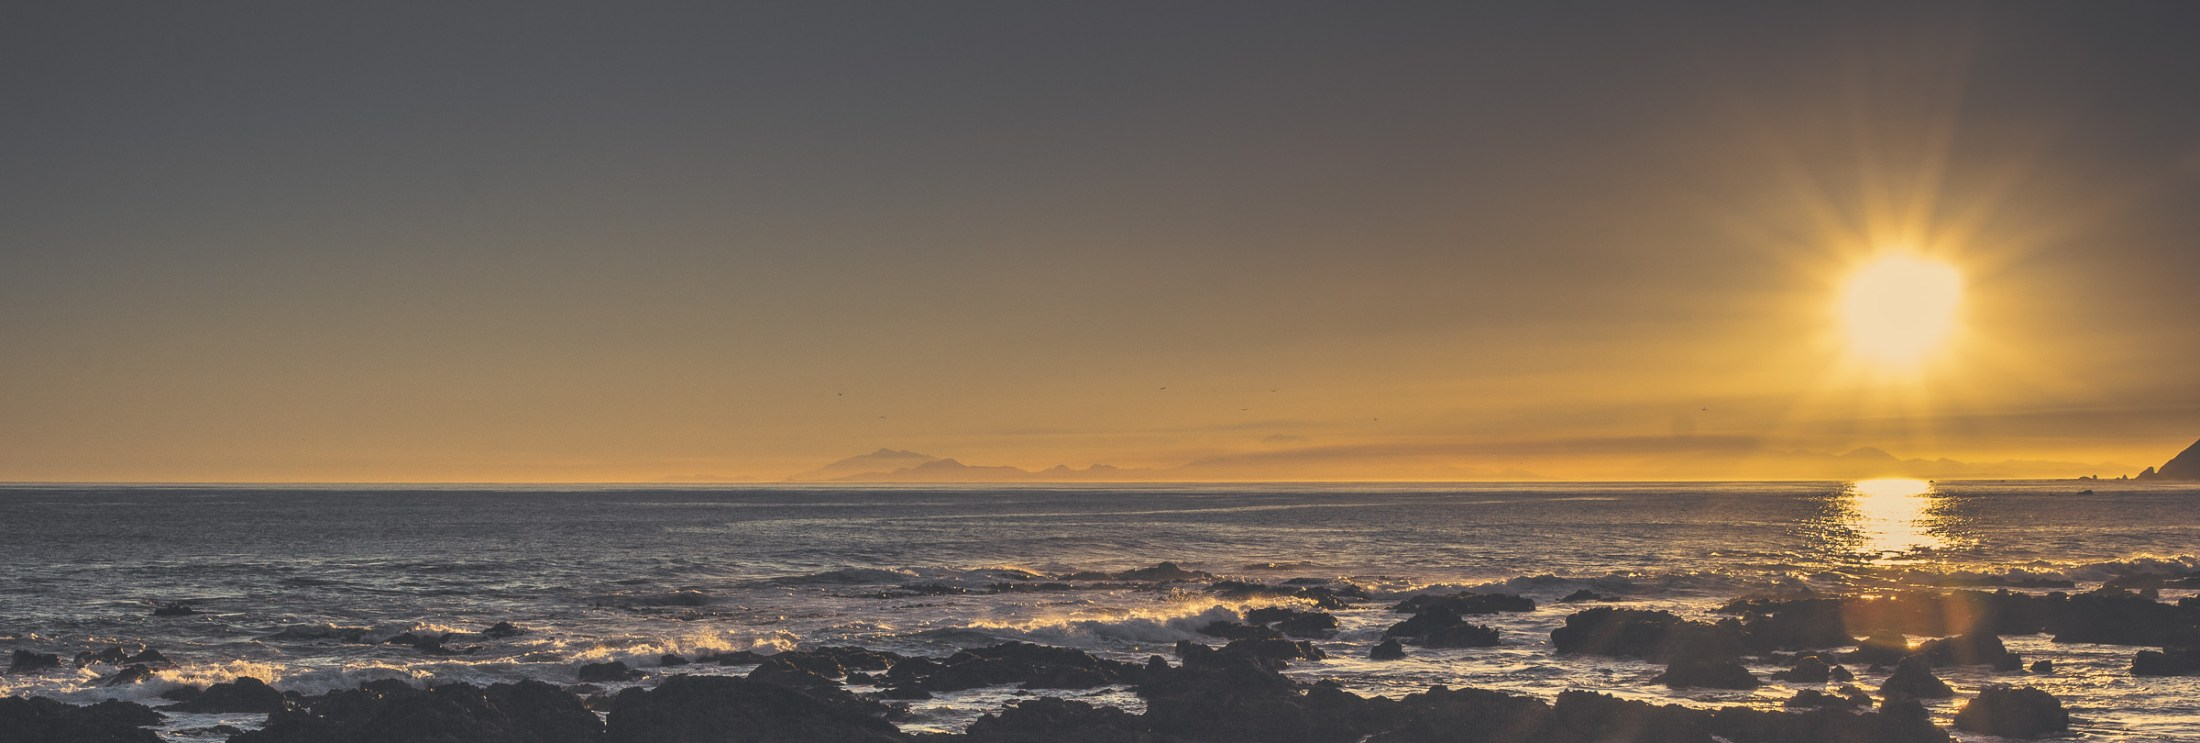 Kaikouras in the sunset from 2011